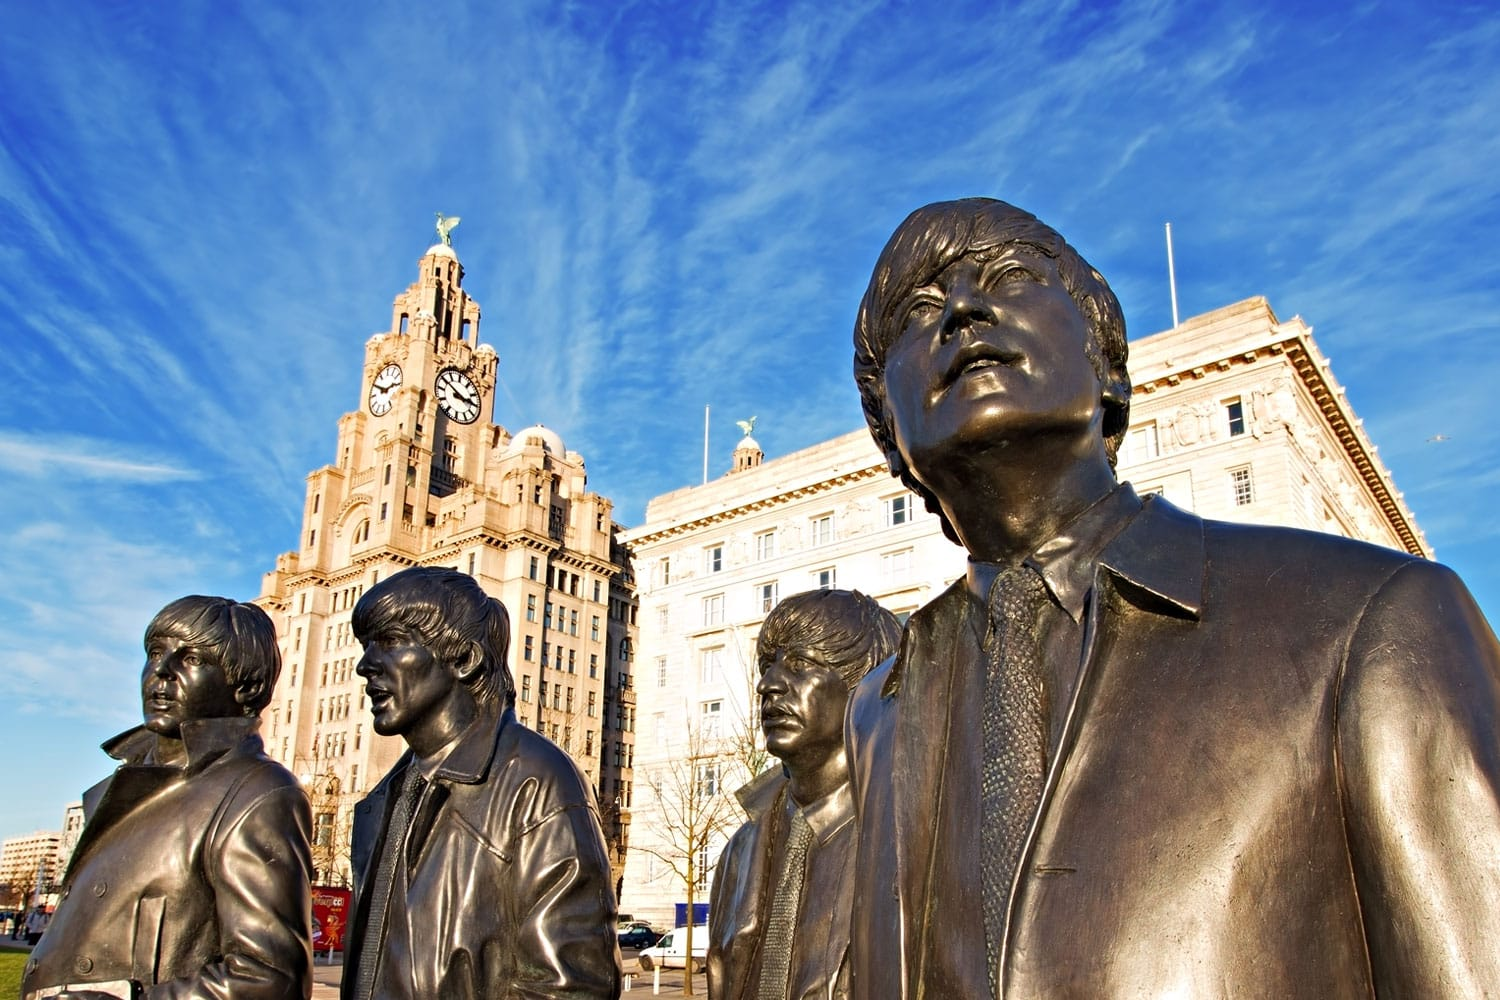 Bronze statue of The Beatles sculpted at the Pier Head in Liverpool